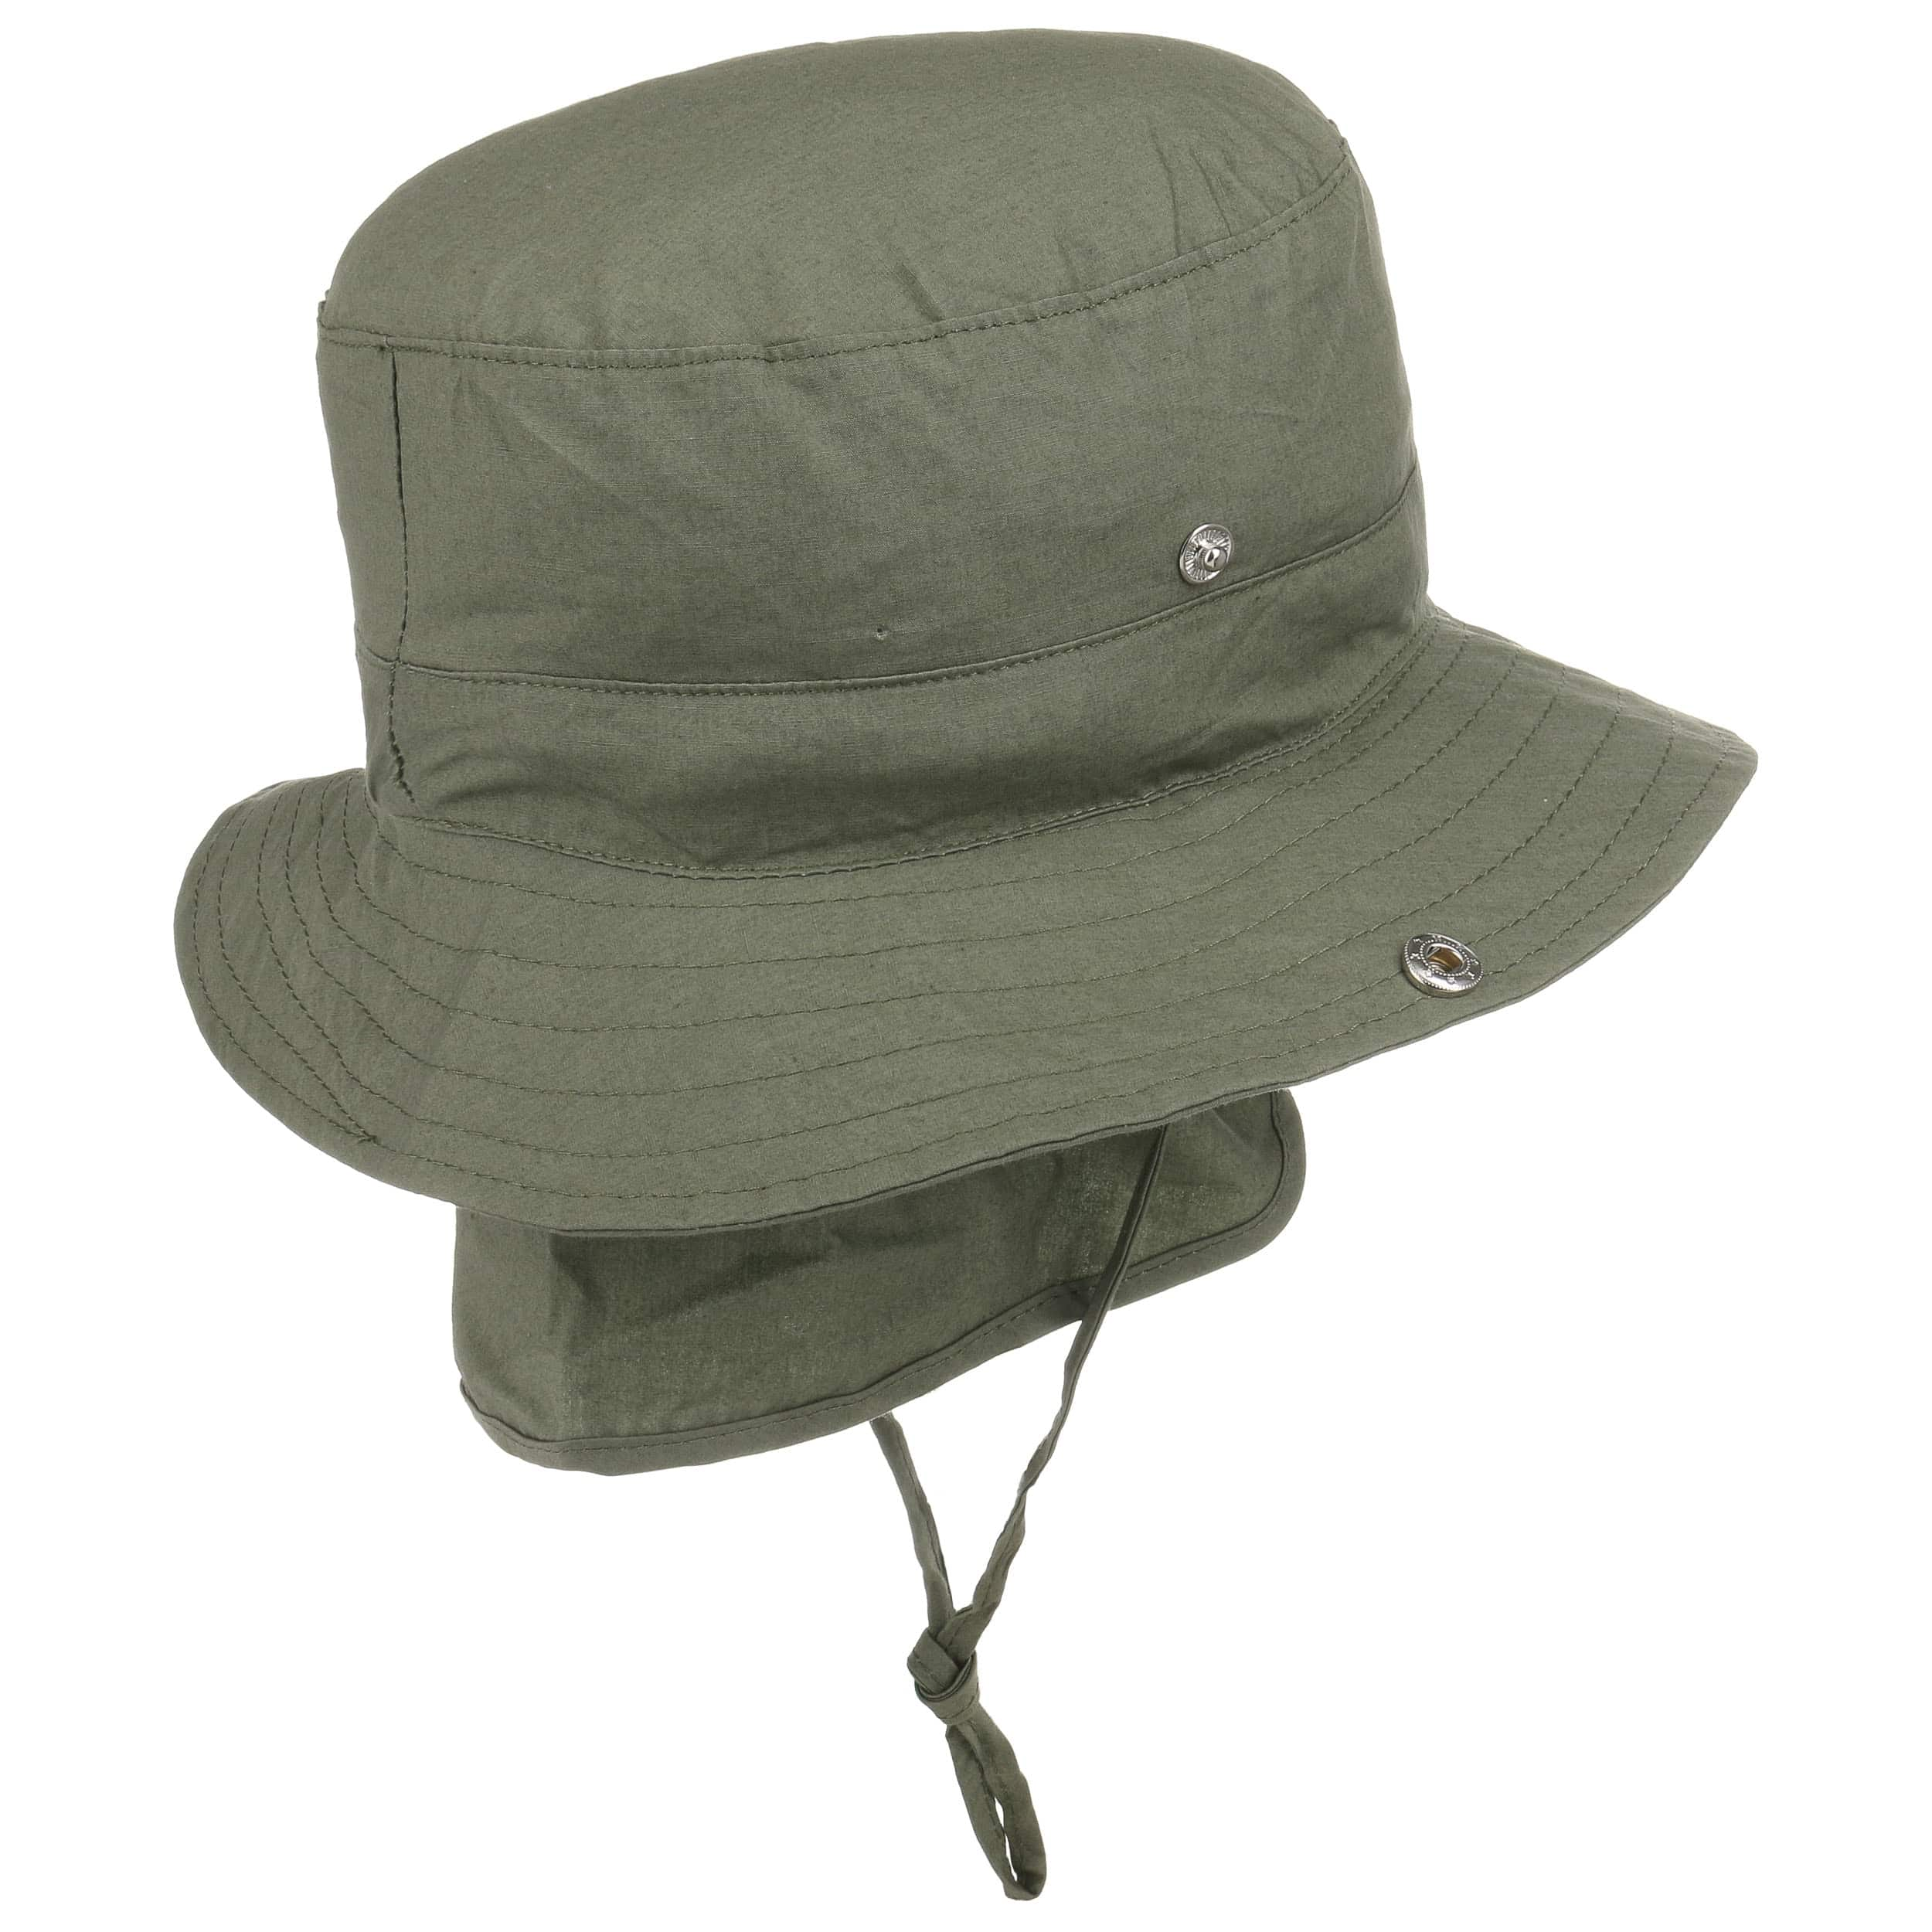 ... Kids Safari Hat with Neck Drape by Döll - olive 1 ... d4715df9fba